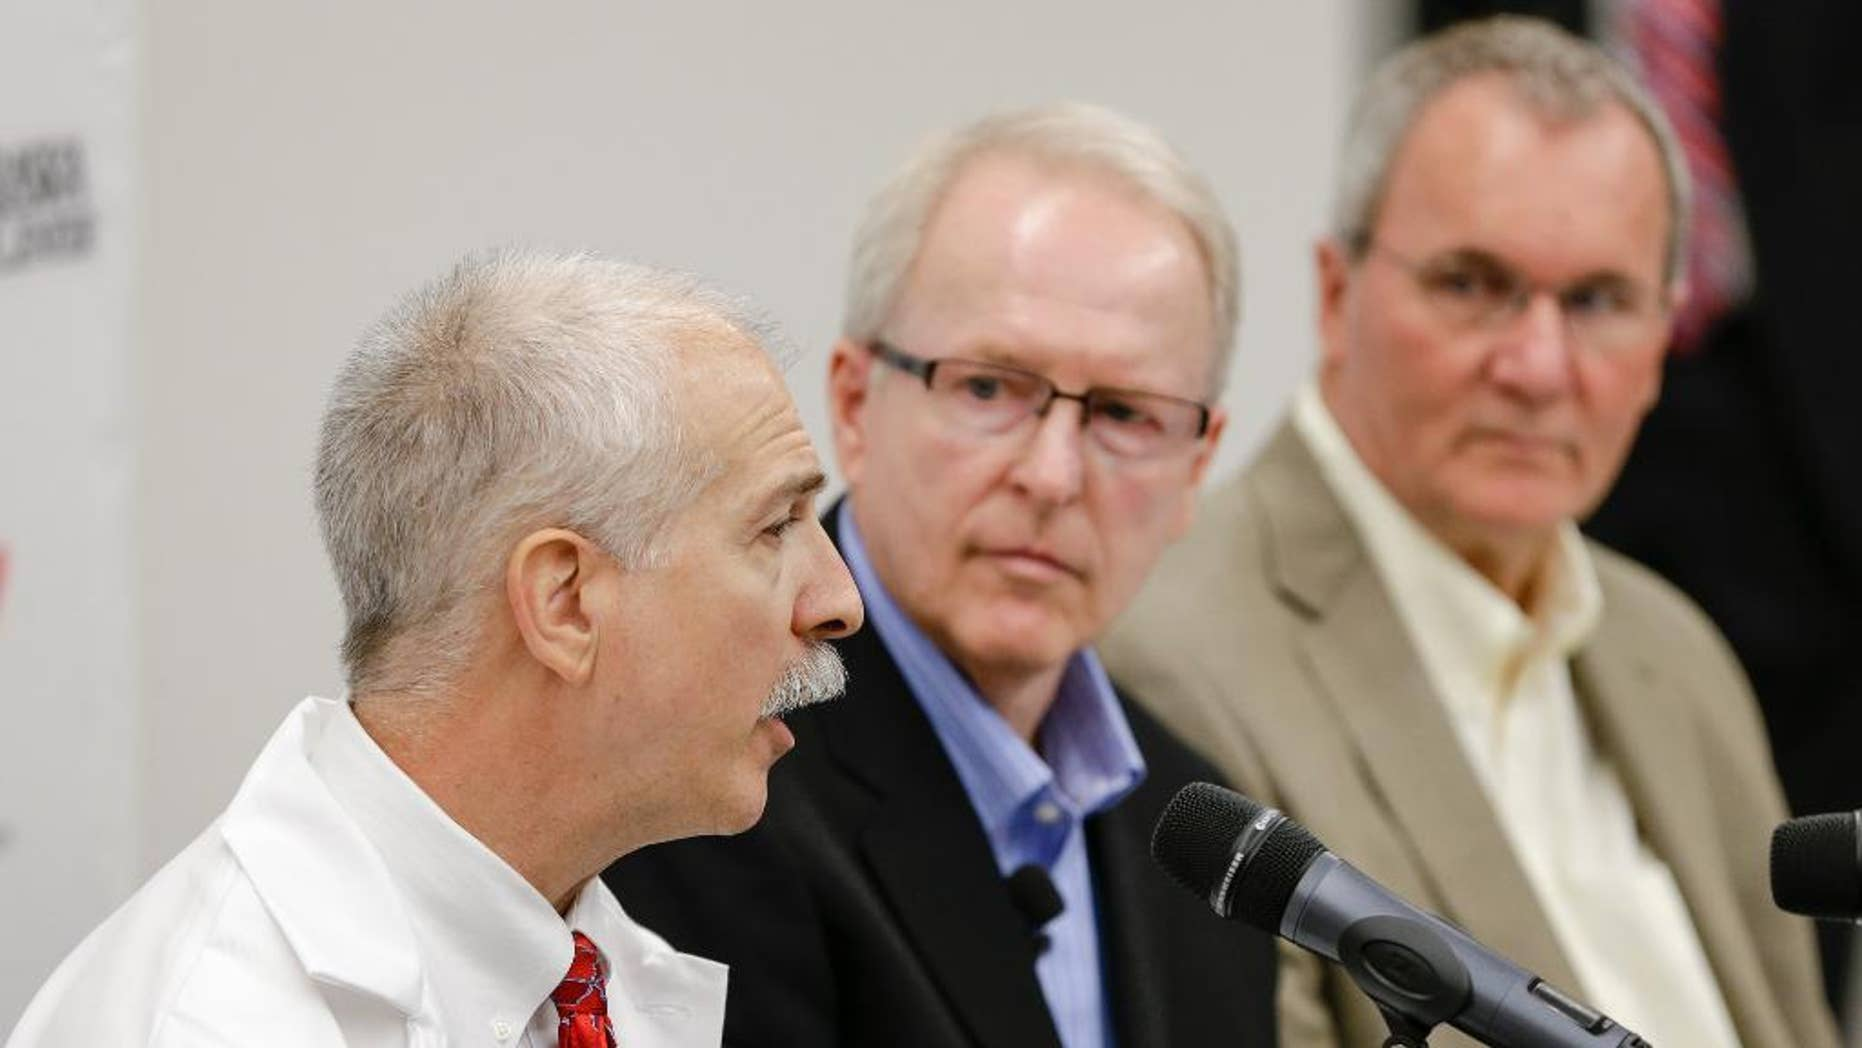 Dr. Mark Rupp, chief of the division of infectious diseases in the department of internal medicine at the Nebraska Medical Center, left, speaks as SIM USA President Bruce Johnson, center, and SIM Liberia country director Will Elphick, right, listen, at a news conference in Omaha, Neb., Friday Sept. 5, 2014, on the condition of ebola patient Dr. Rick Sacra, 51, who is treated at the center. Sacra, who served with North Carolina-based charity SIM, is the third American aid worker infected by the Ebola virus. He will begin treatment  in the hospital's 10-bed special isolation unit, the largest of four such units in the U.S. (AP Photo/Nati Harnik)